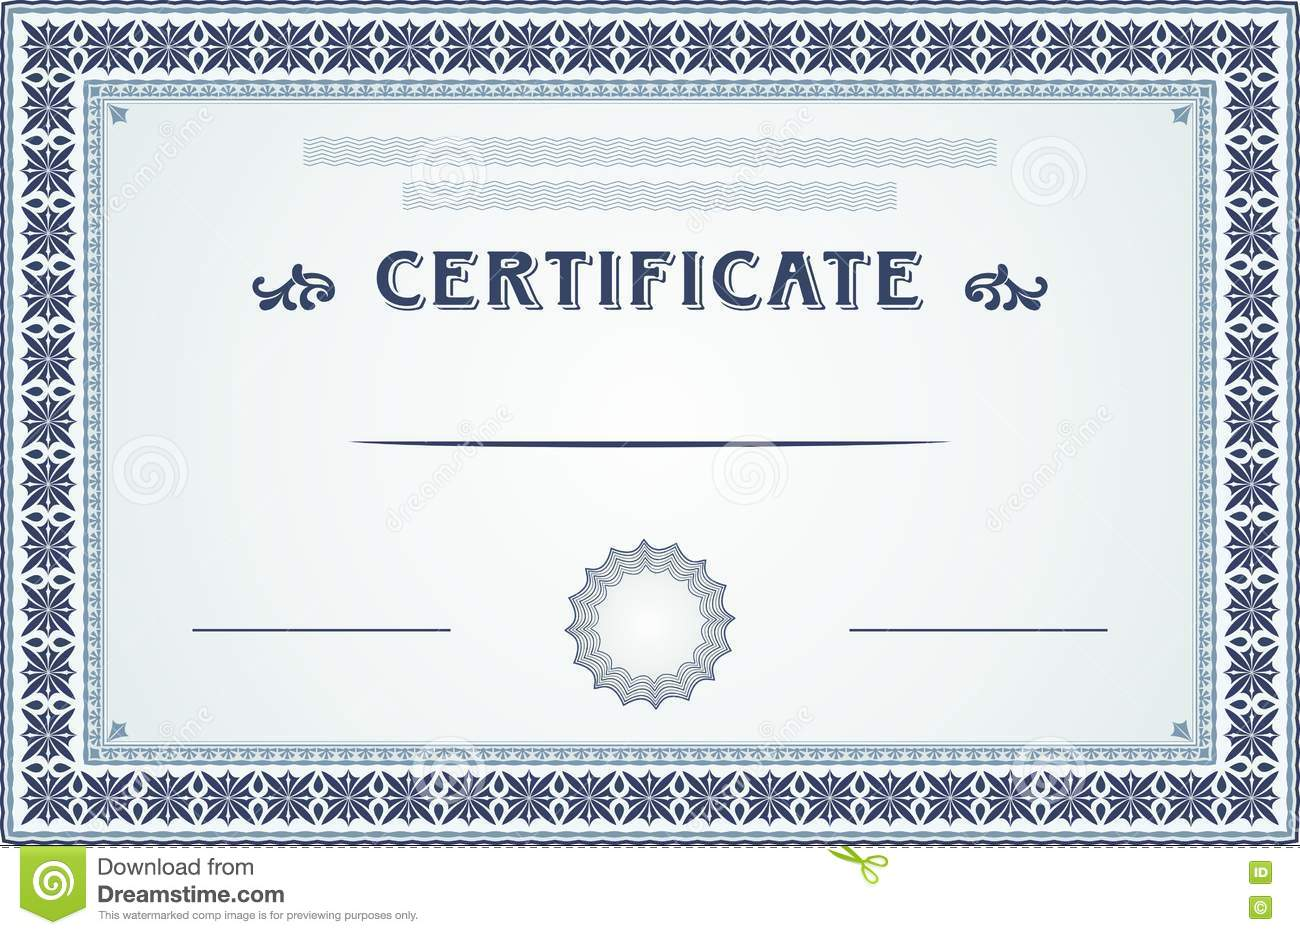 Certificate Border And Template Design Vector Image 74152536 – Certificate Borders Free Download